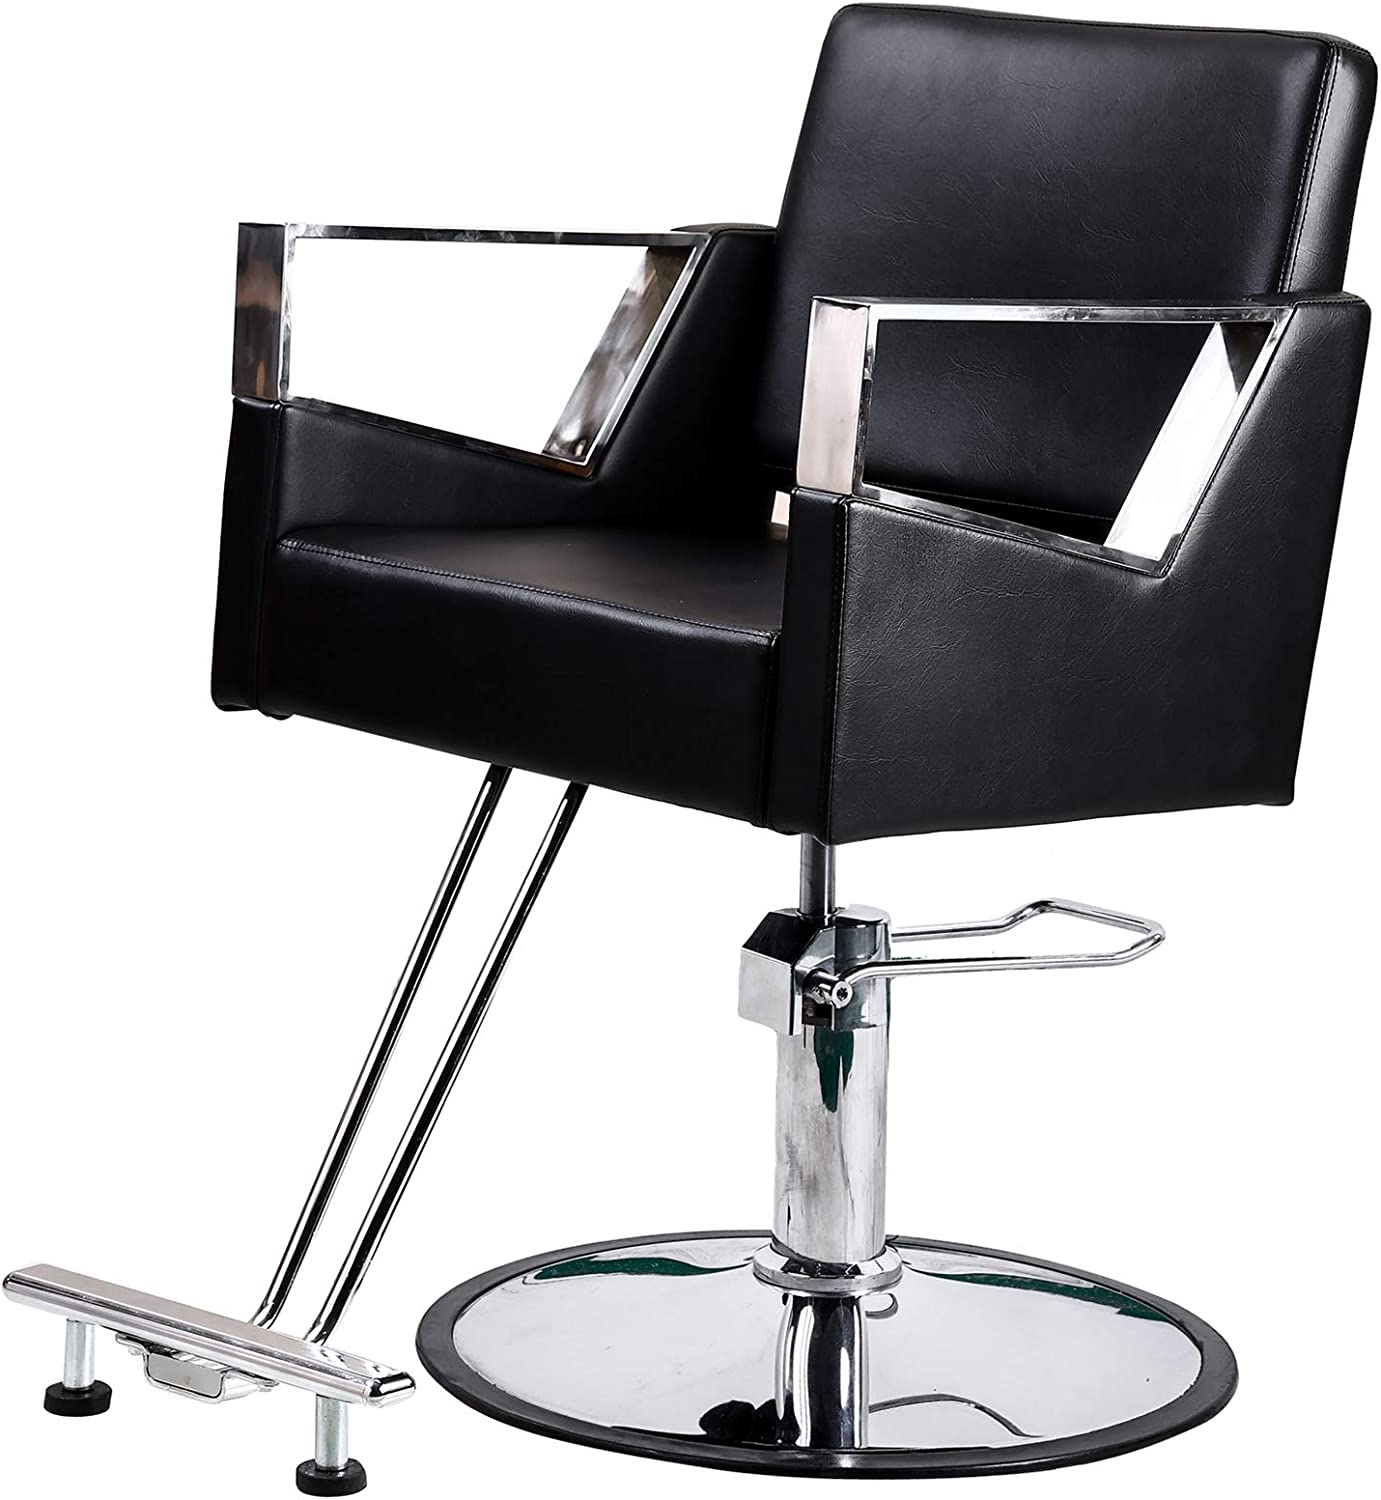 Beauty Style Hydraulic Styling Ranking integrated 1st place Salon Chair Equipment Max 90% OFF Spa Barber